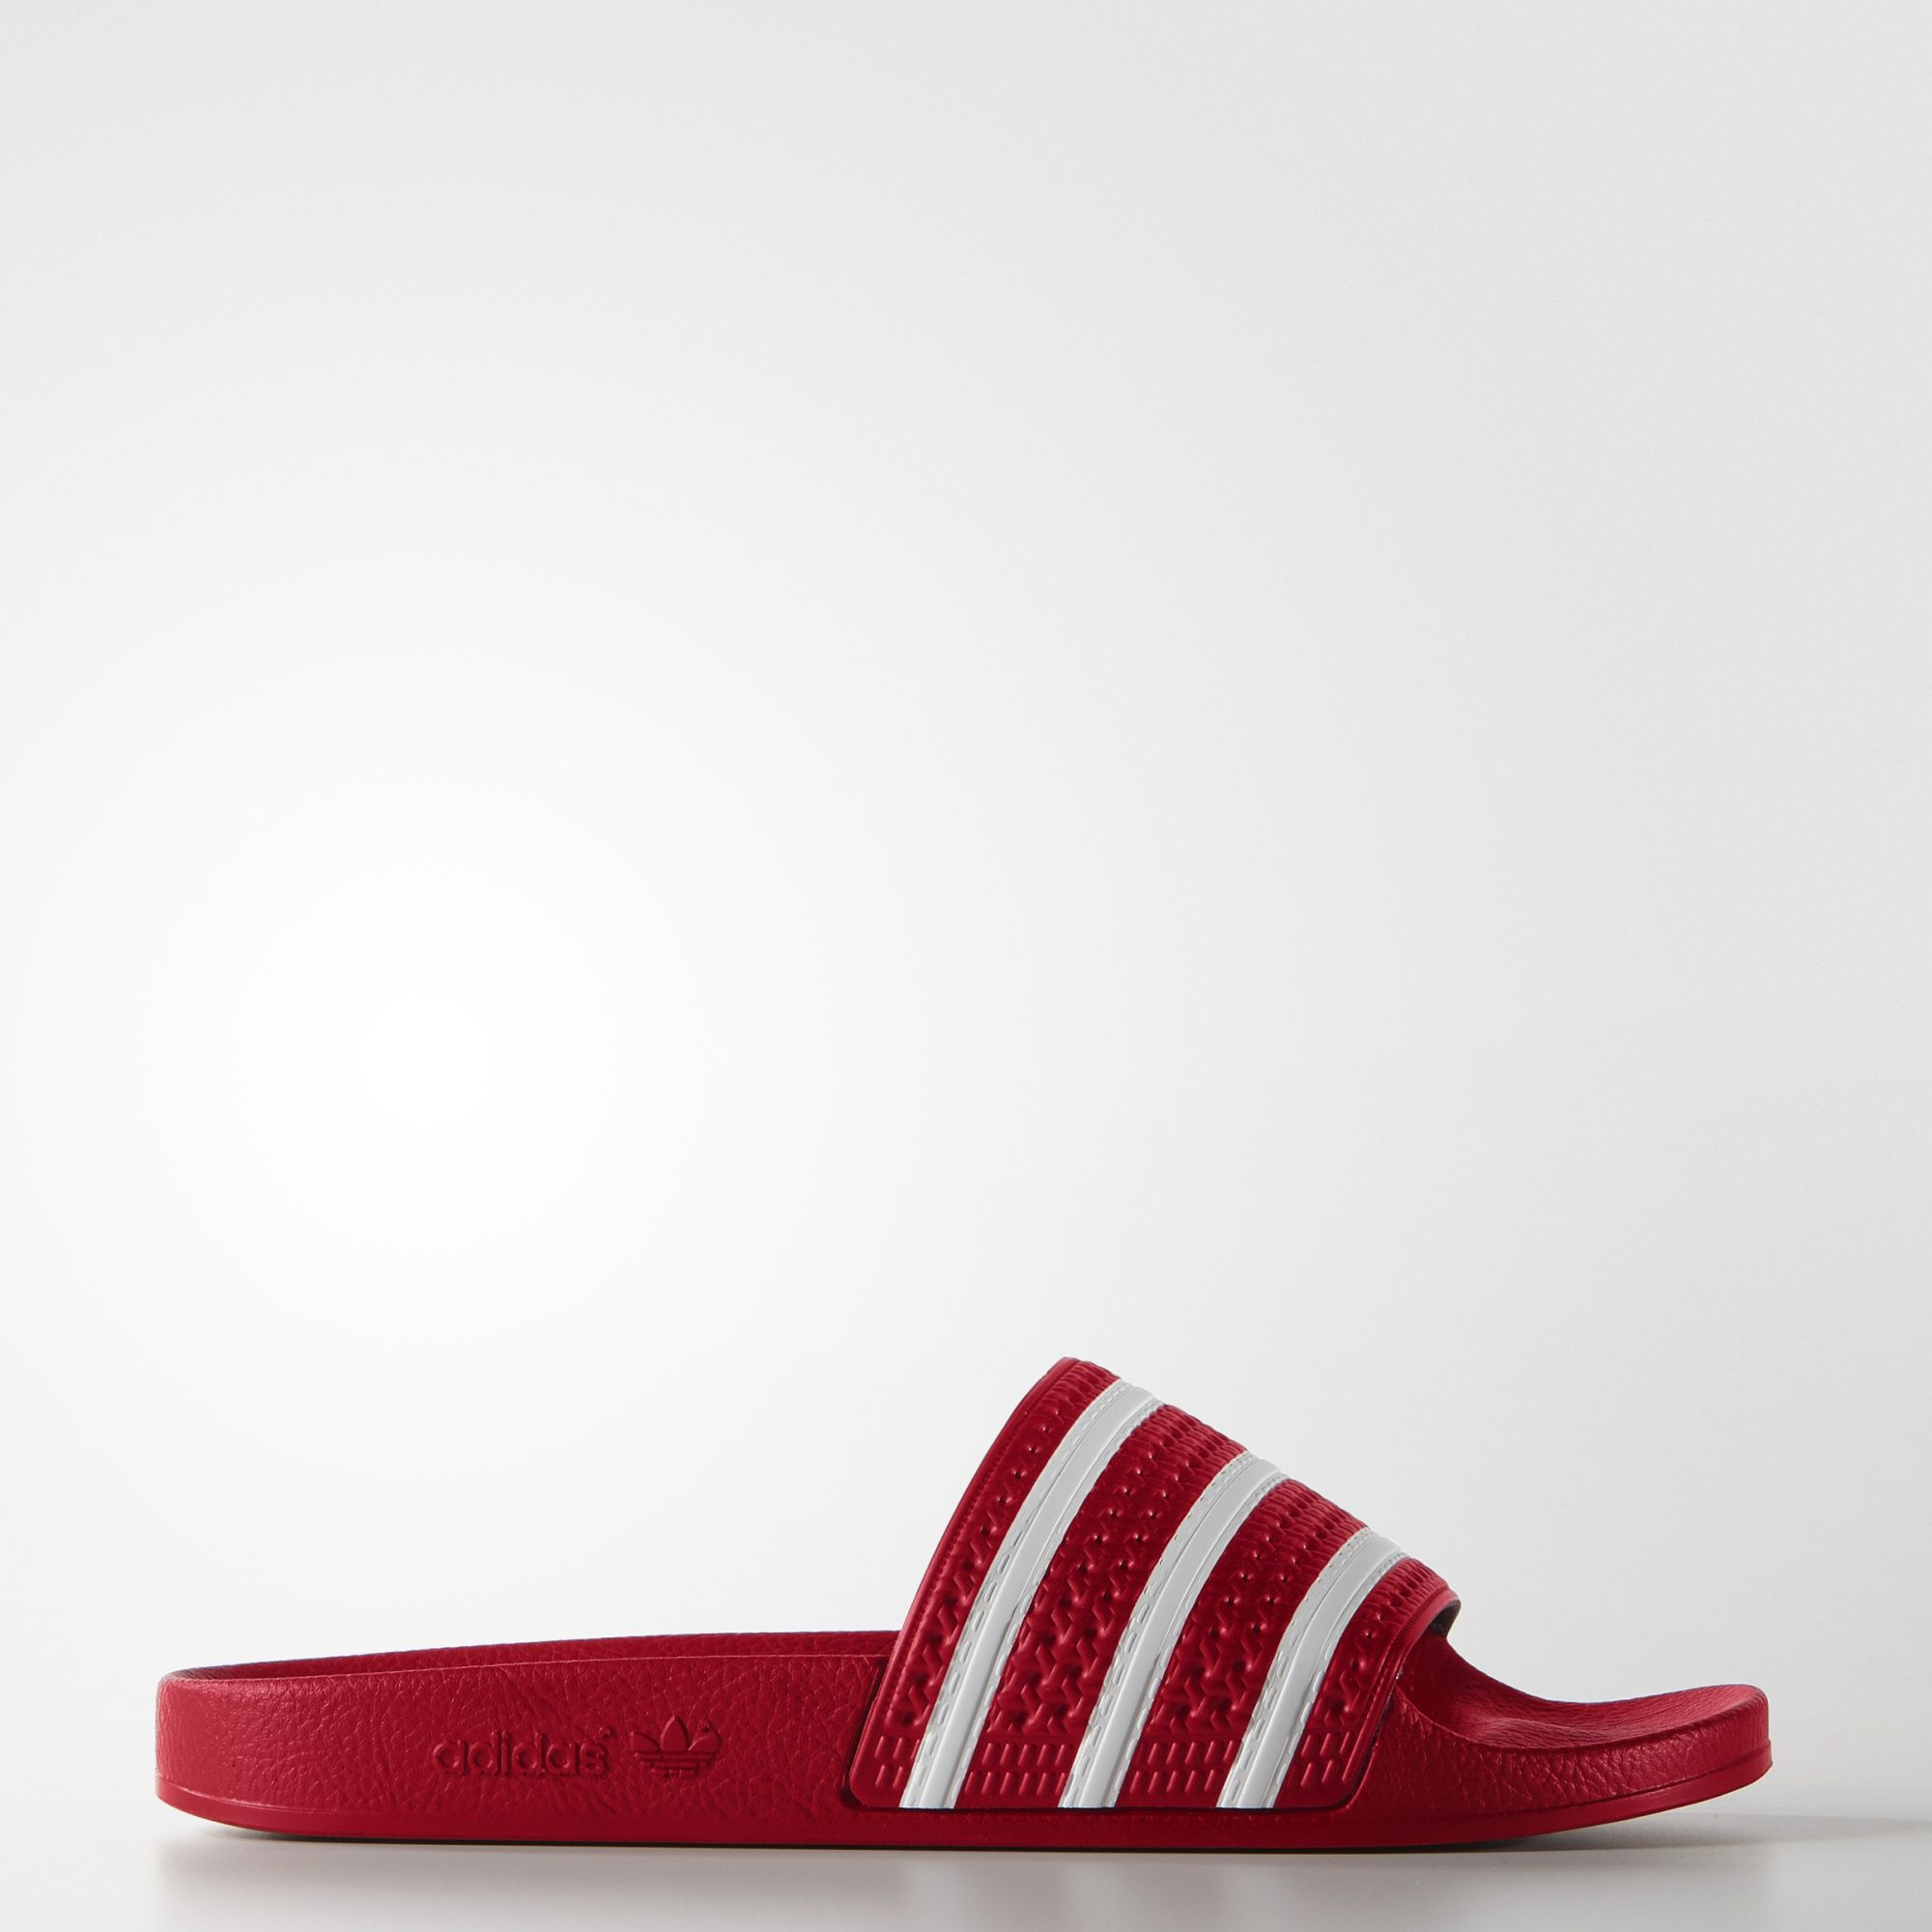 First introduced in 1972 and going strong ever since, the adidas Adilette  is the sport slide that started it all. This season, the original has been  ...